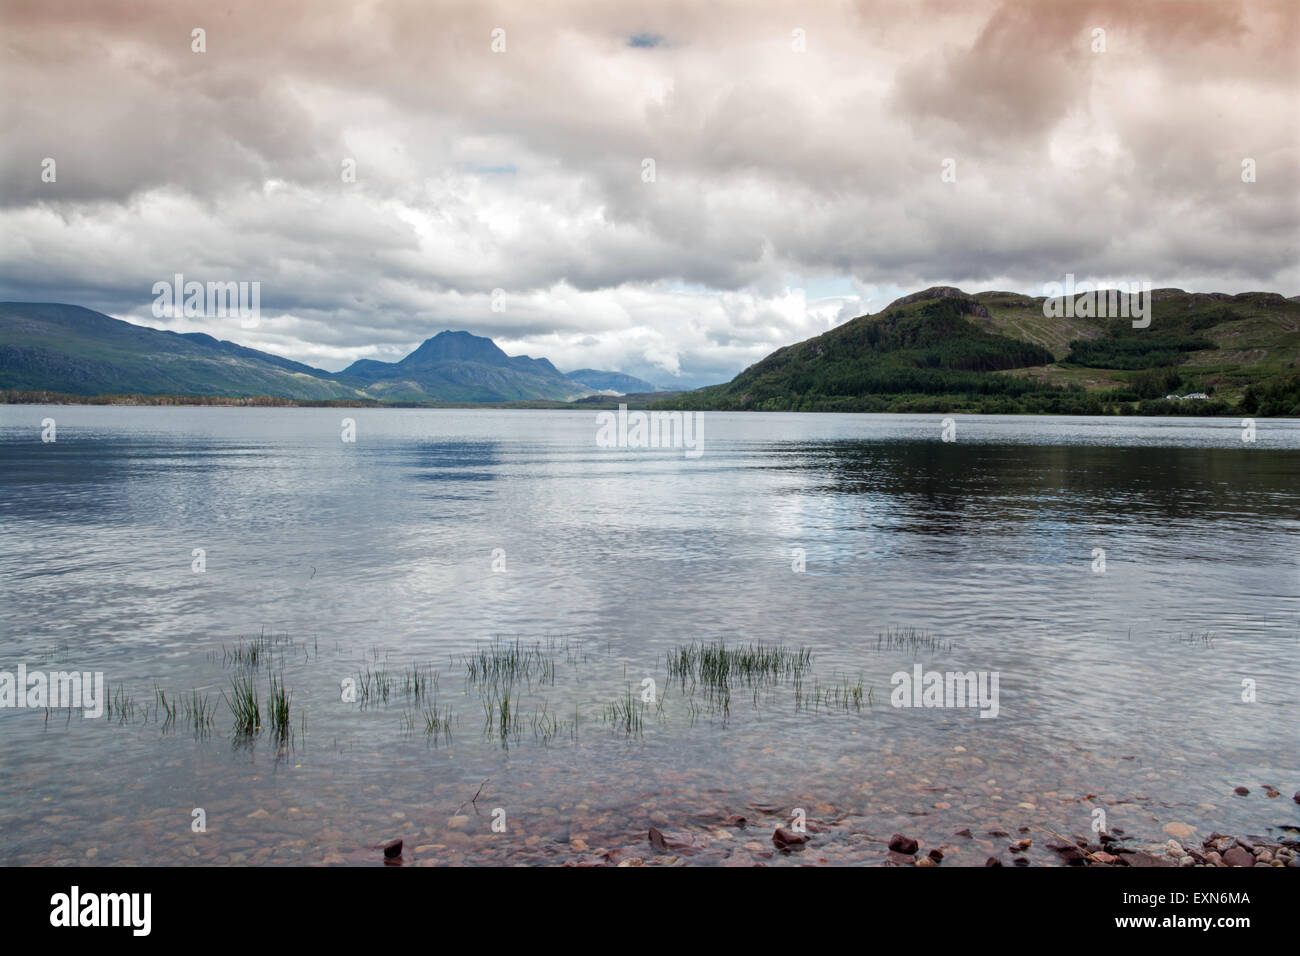 Loch Maree and Slioch under a stormy sky - Stock Image